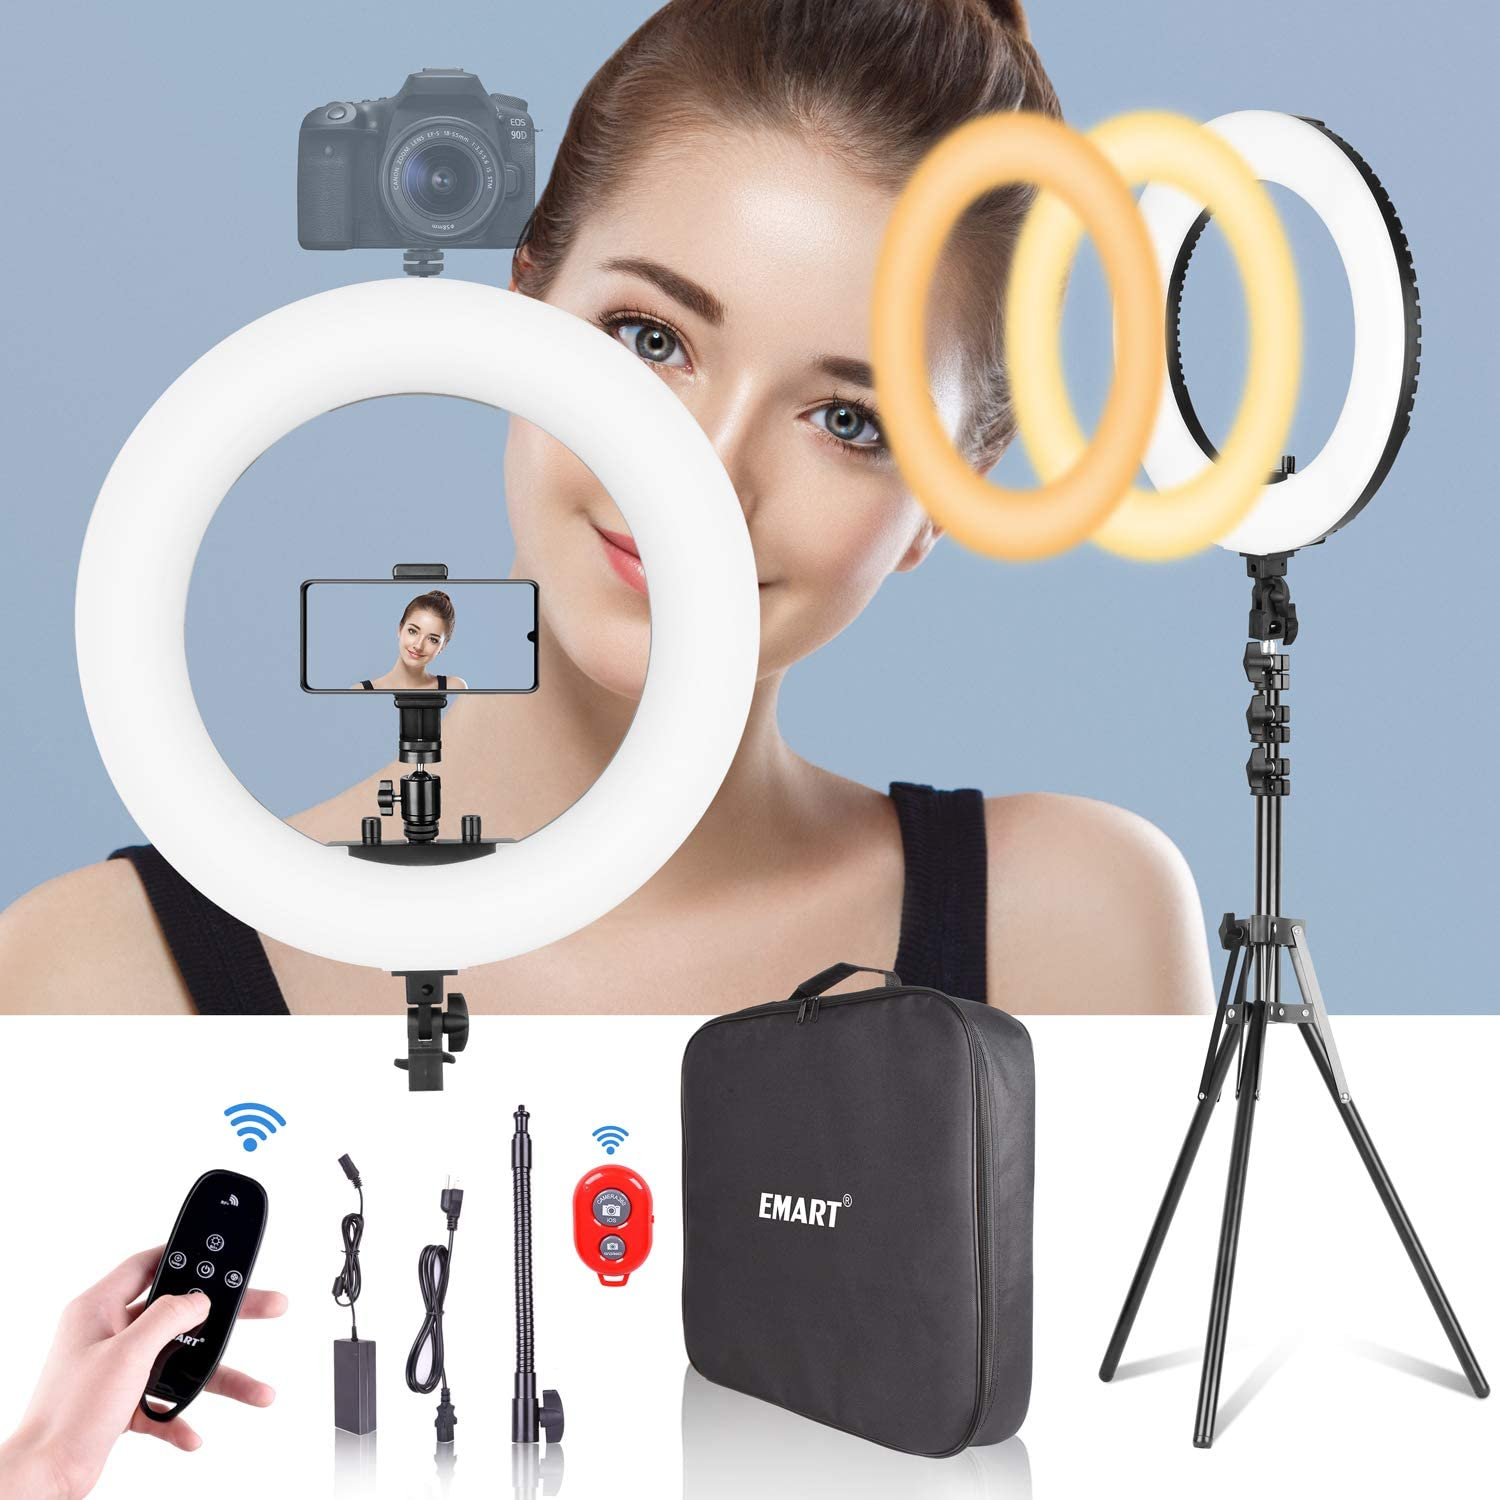 Emart 18-inch Ring Light with Stand, Big Adjustable 3200-5500K LED Lights Ring with Ultra-wide Lighting Area for Camera Photography, YouTube Videos, Makeup (Kit: Phone Holder, Remote, Soft Tube, etc.) : Camera & Photo